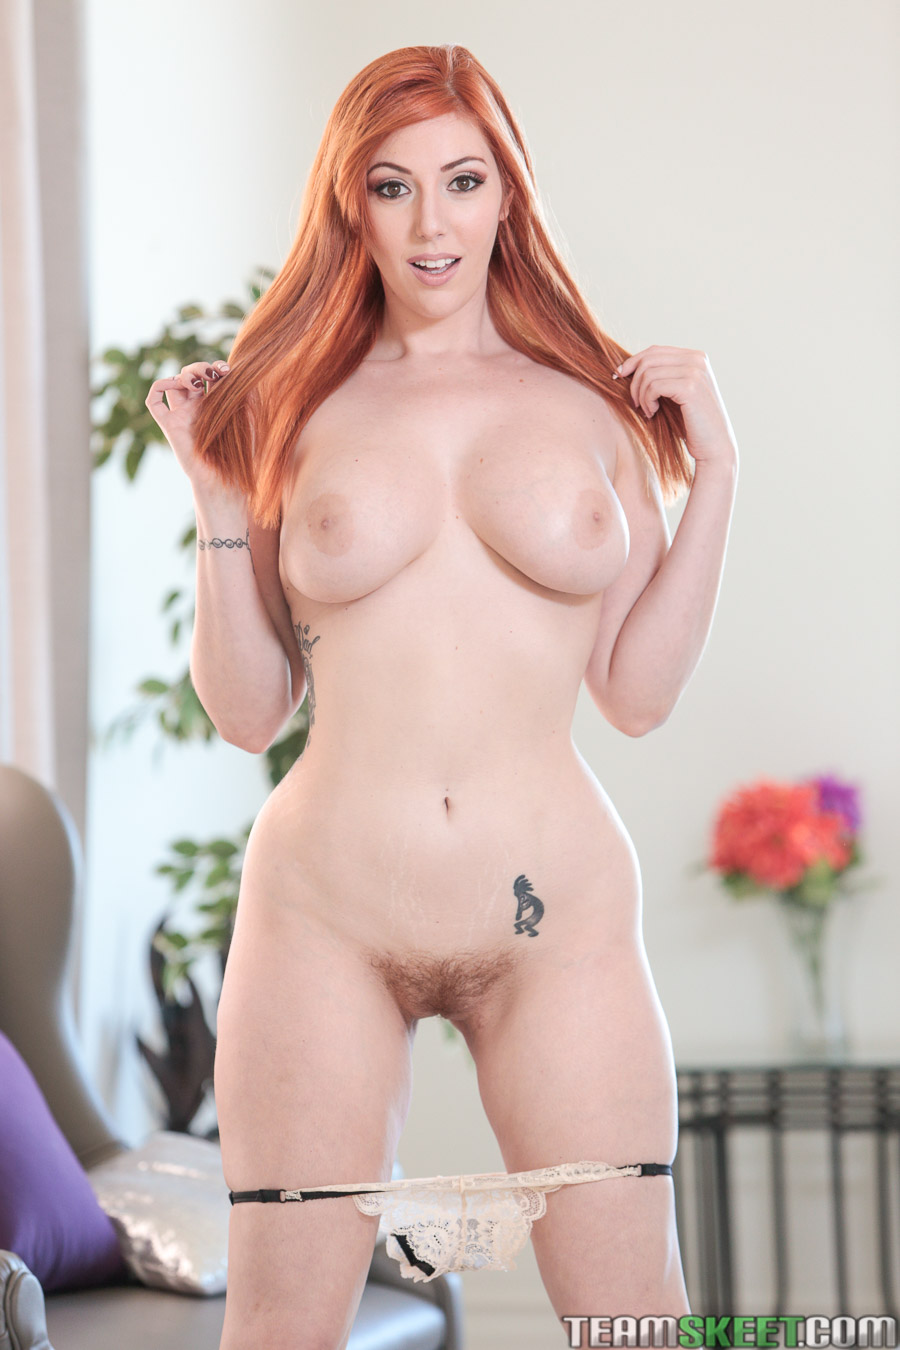 Naked redhead porn star forced have sex